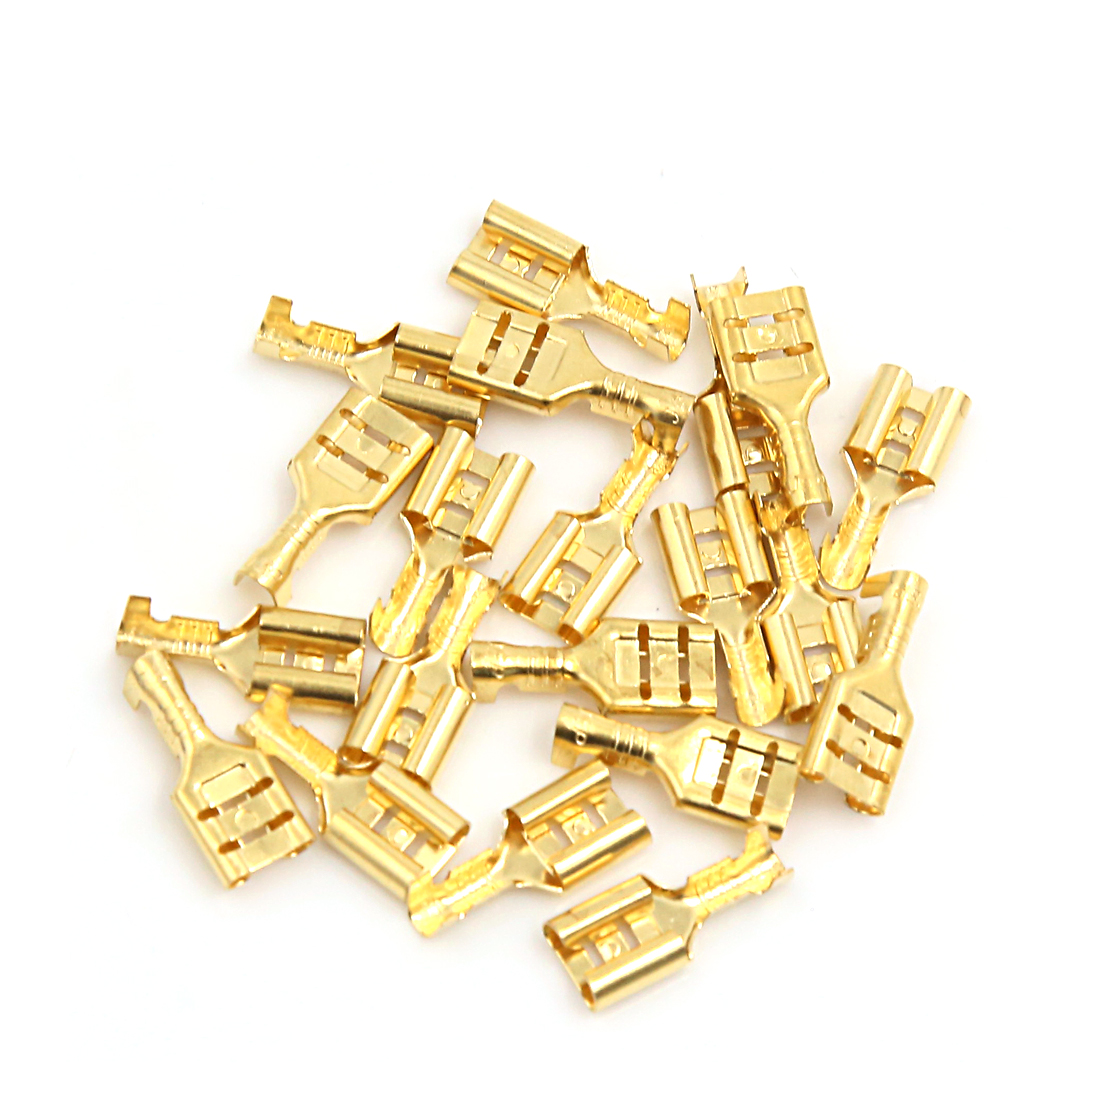 20Pcs Electronic Components 7mm Width Female Spade Terminals Connector Gold Tone